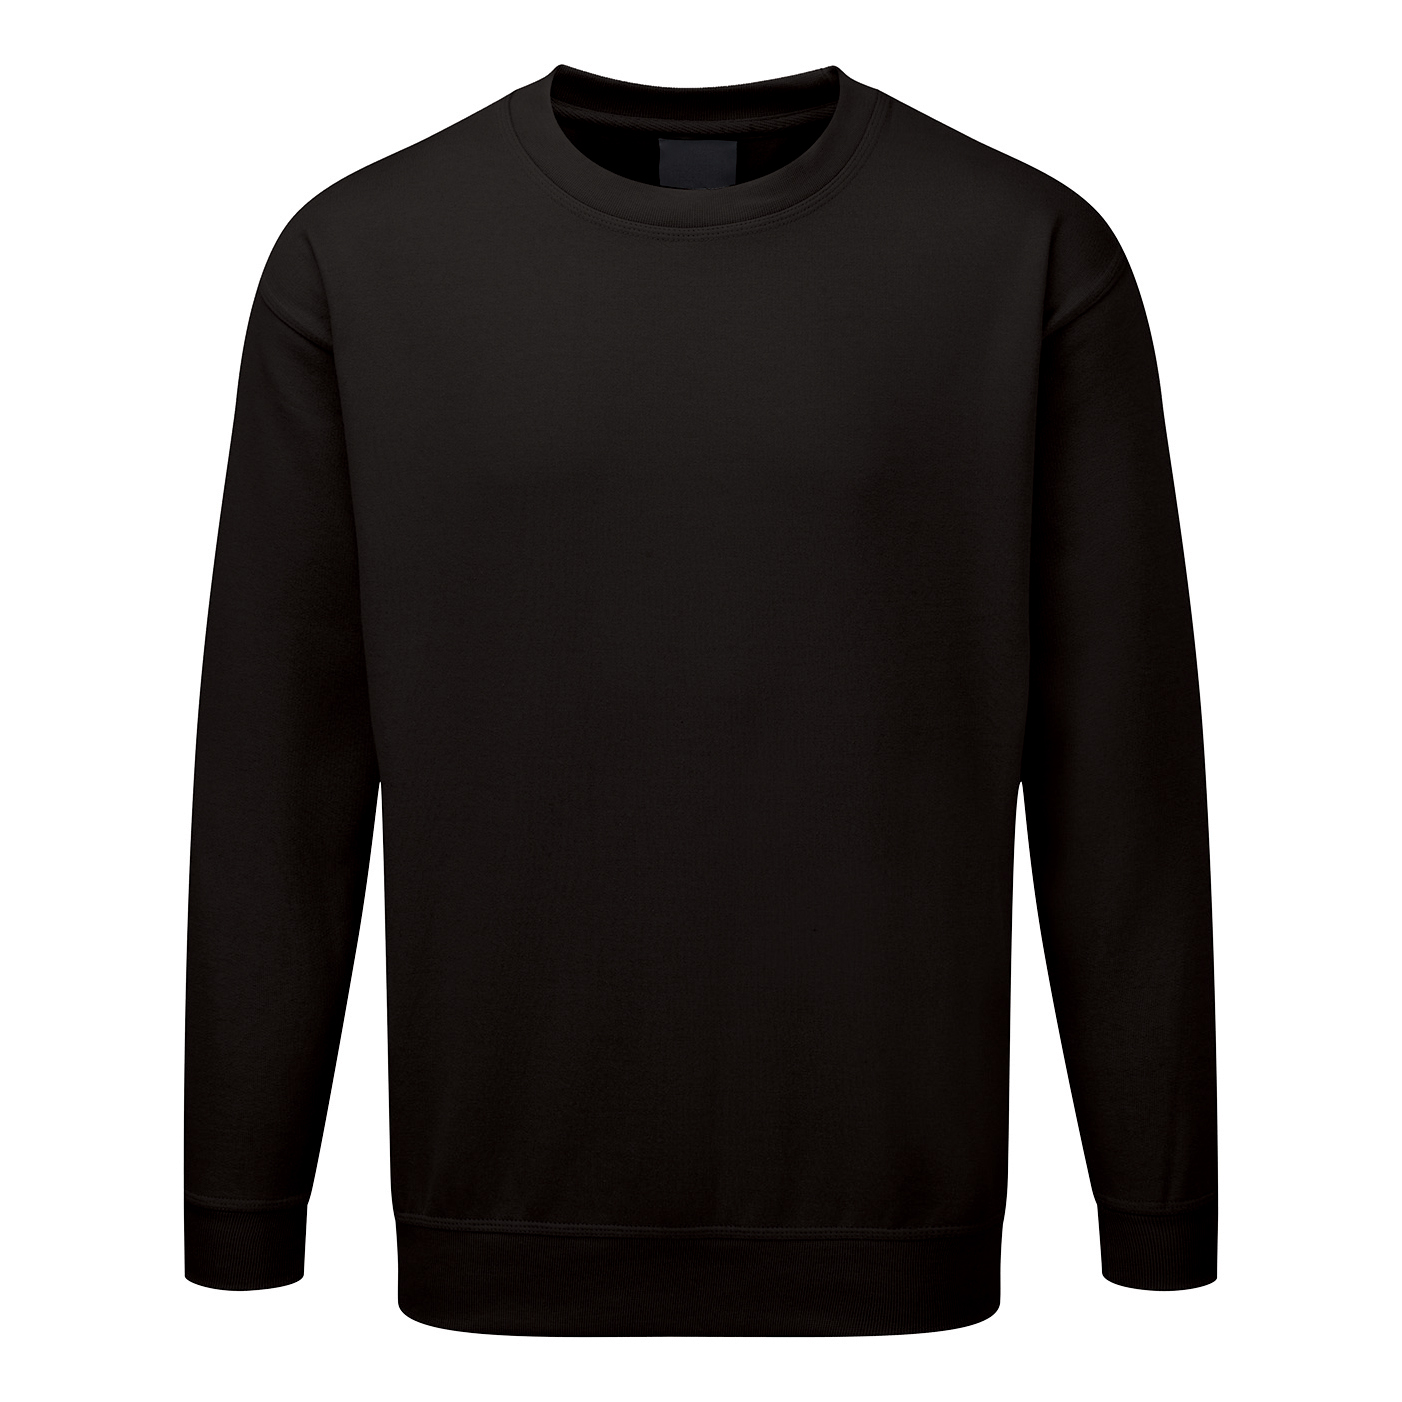 Click Workwear Sweatshirt Polycotton 300gsm Small Black Ref CLPCSBLS *1-3 Days Lead Time*